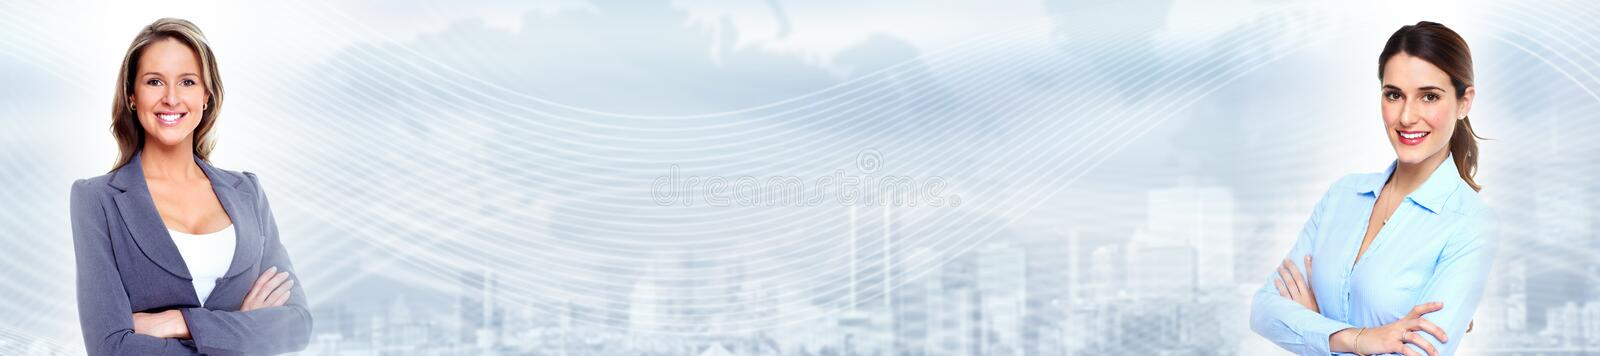 Business background. Business people group over abstract financial background stock photography